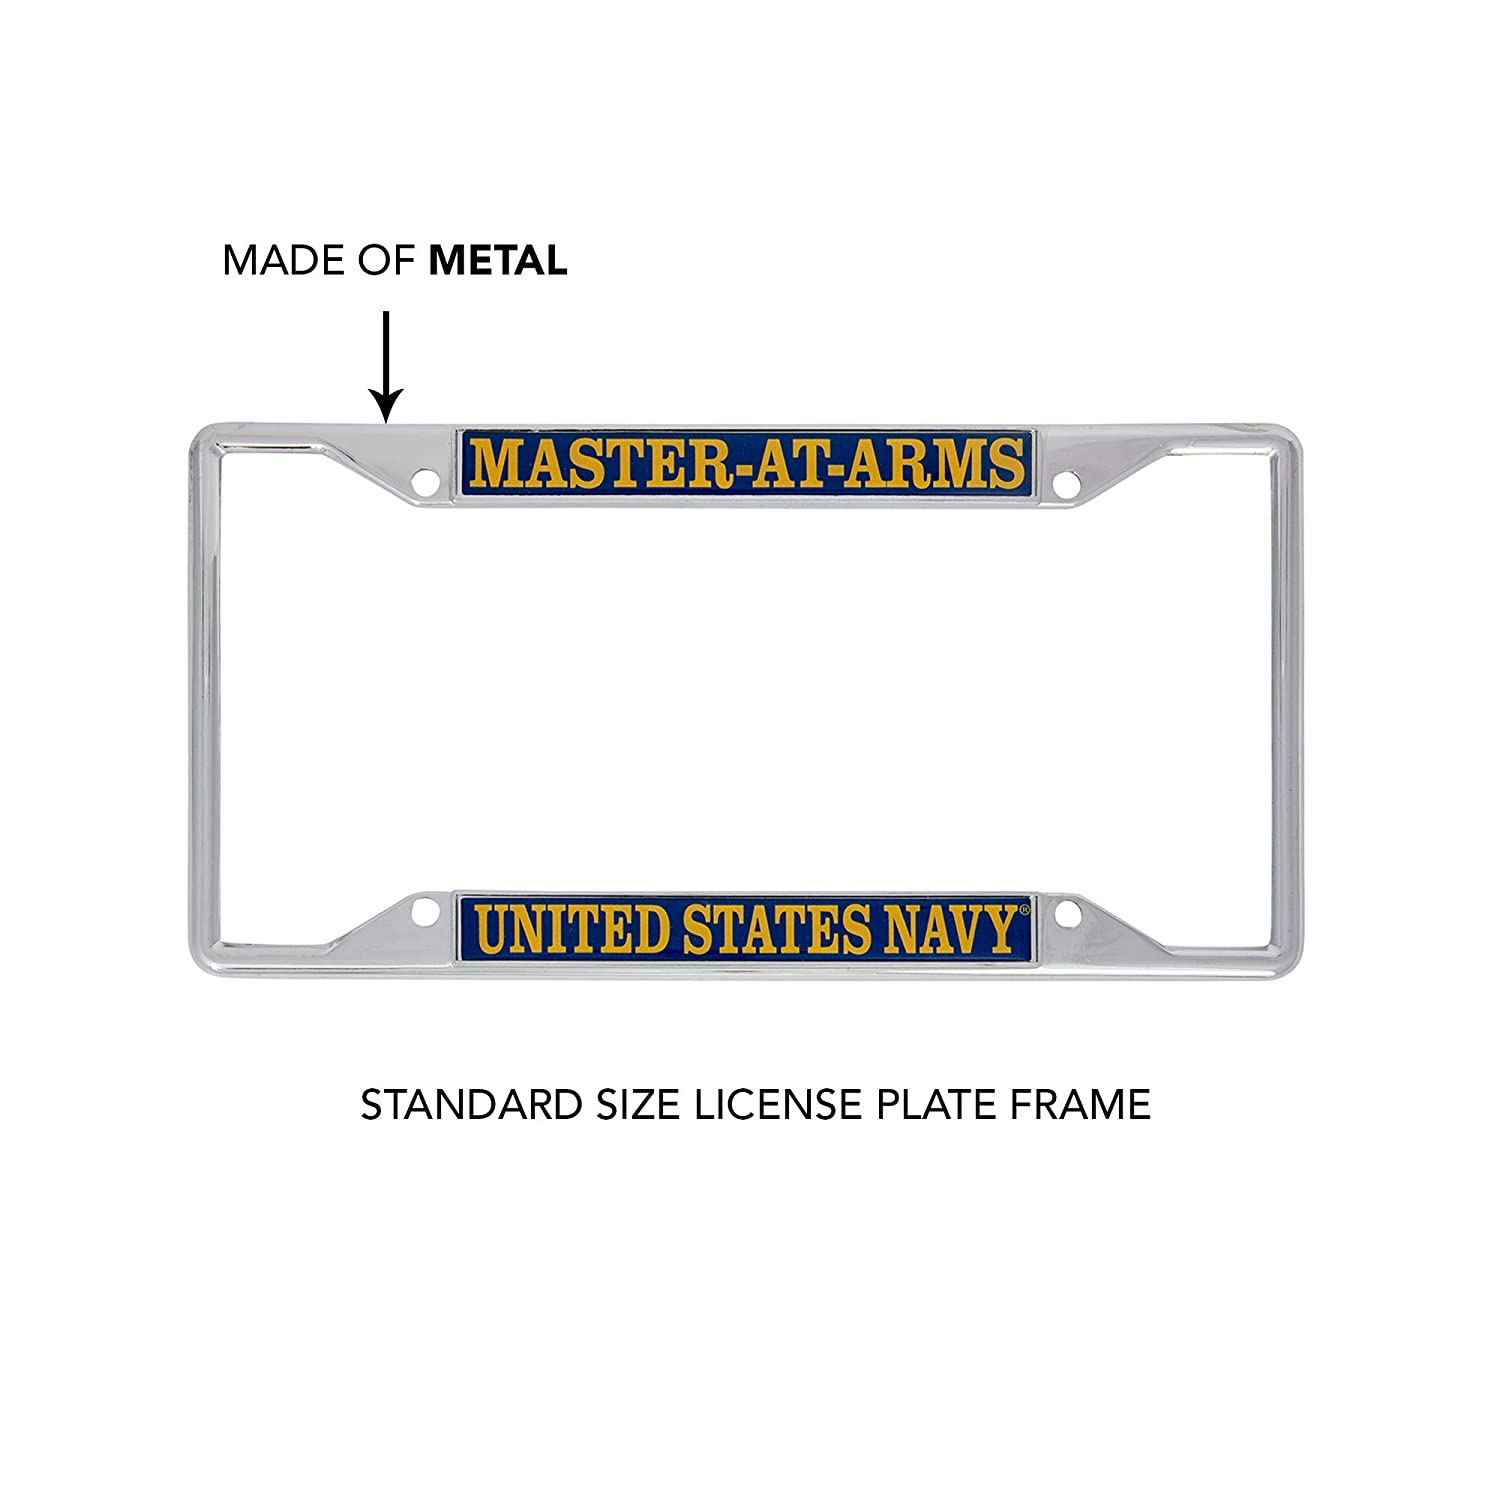 Desert Cactus US Navy Master-at-Arms Enlisted Rating Insignia License Plate Frame for Front Back of Car Officially Licensed United States